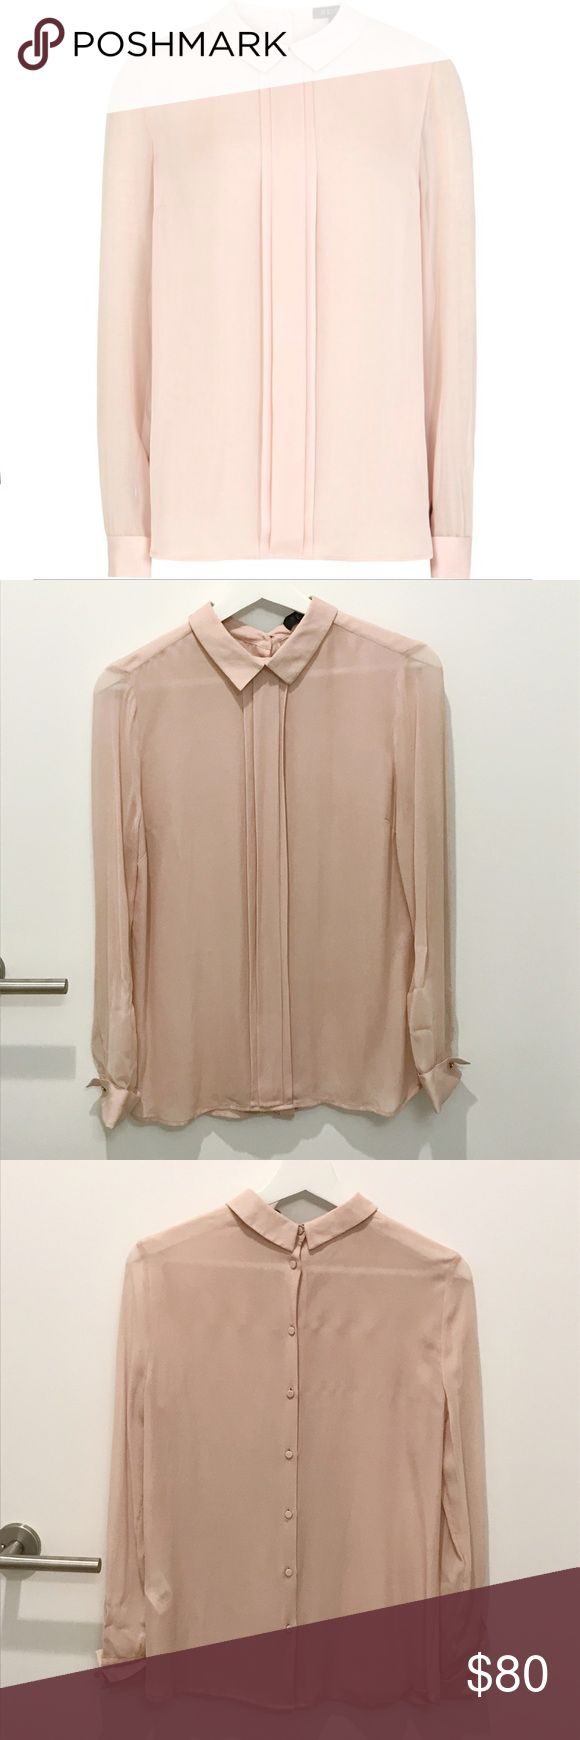 Reiss London Lola Silk Button-back Shirt in Pink 100% Silk. Like new condition. Size: UK6 = EU34 = US2. Reiss Tops Blouses